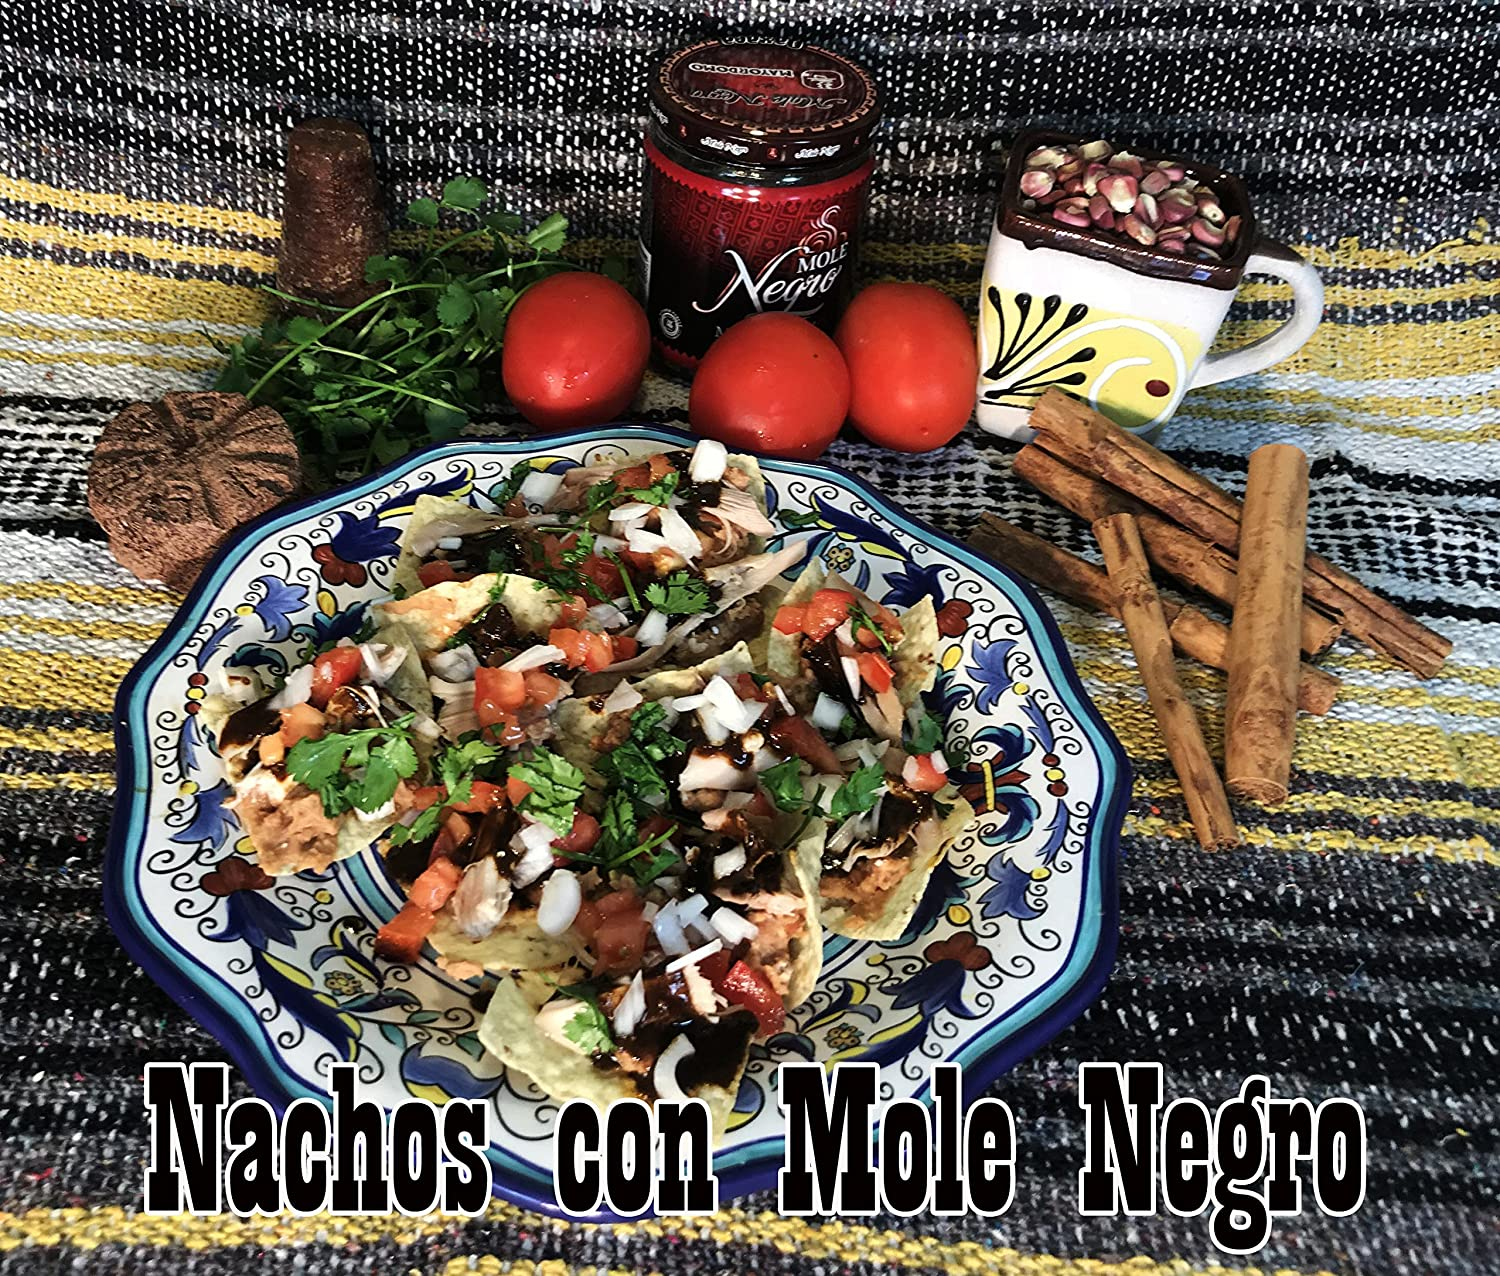 Amazon.com : Mole Negro Mayordomo 450 gr (Black Mexican Mole Sauce) (2) : Grocery & Gourmet Food